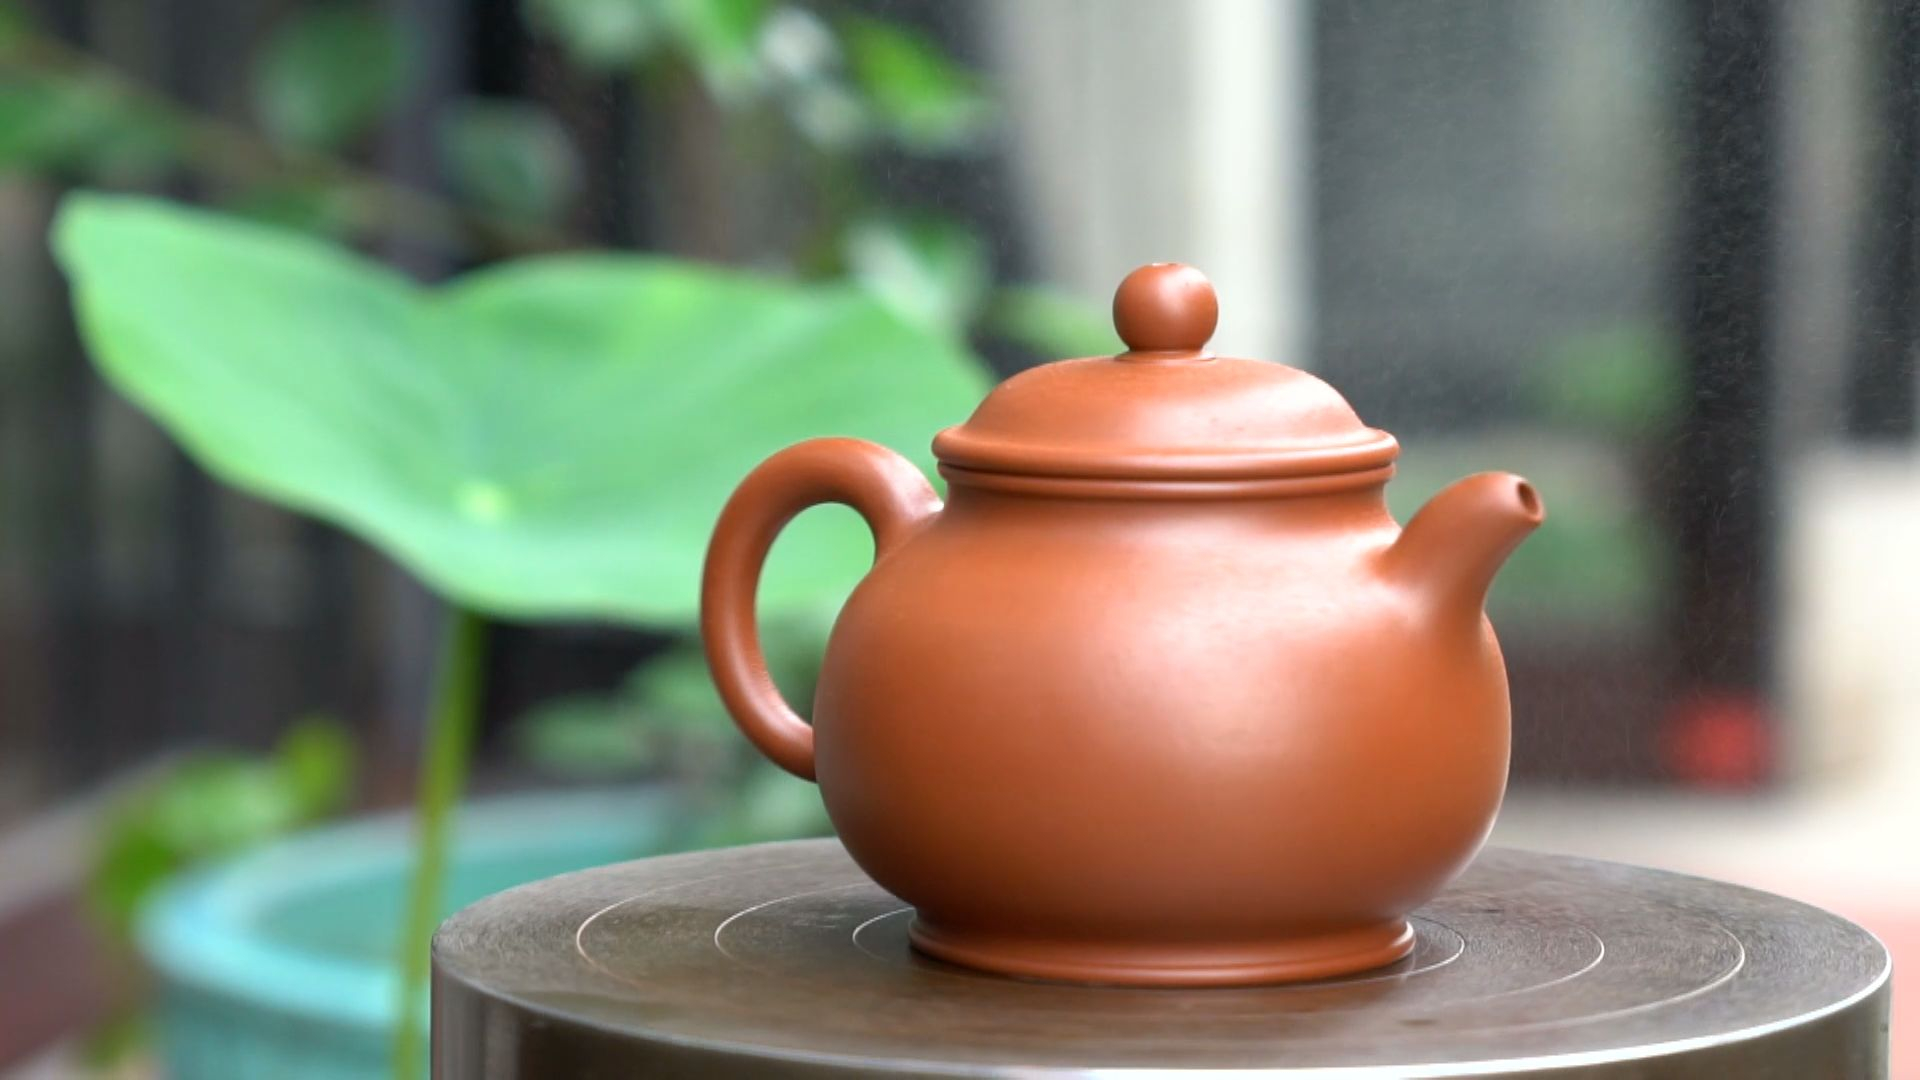 Passing down traditions: Promoting handmade teapot craft today